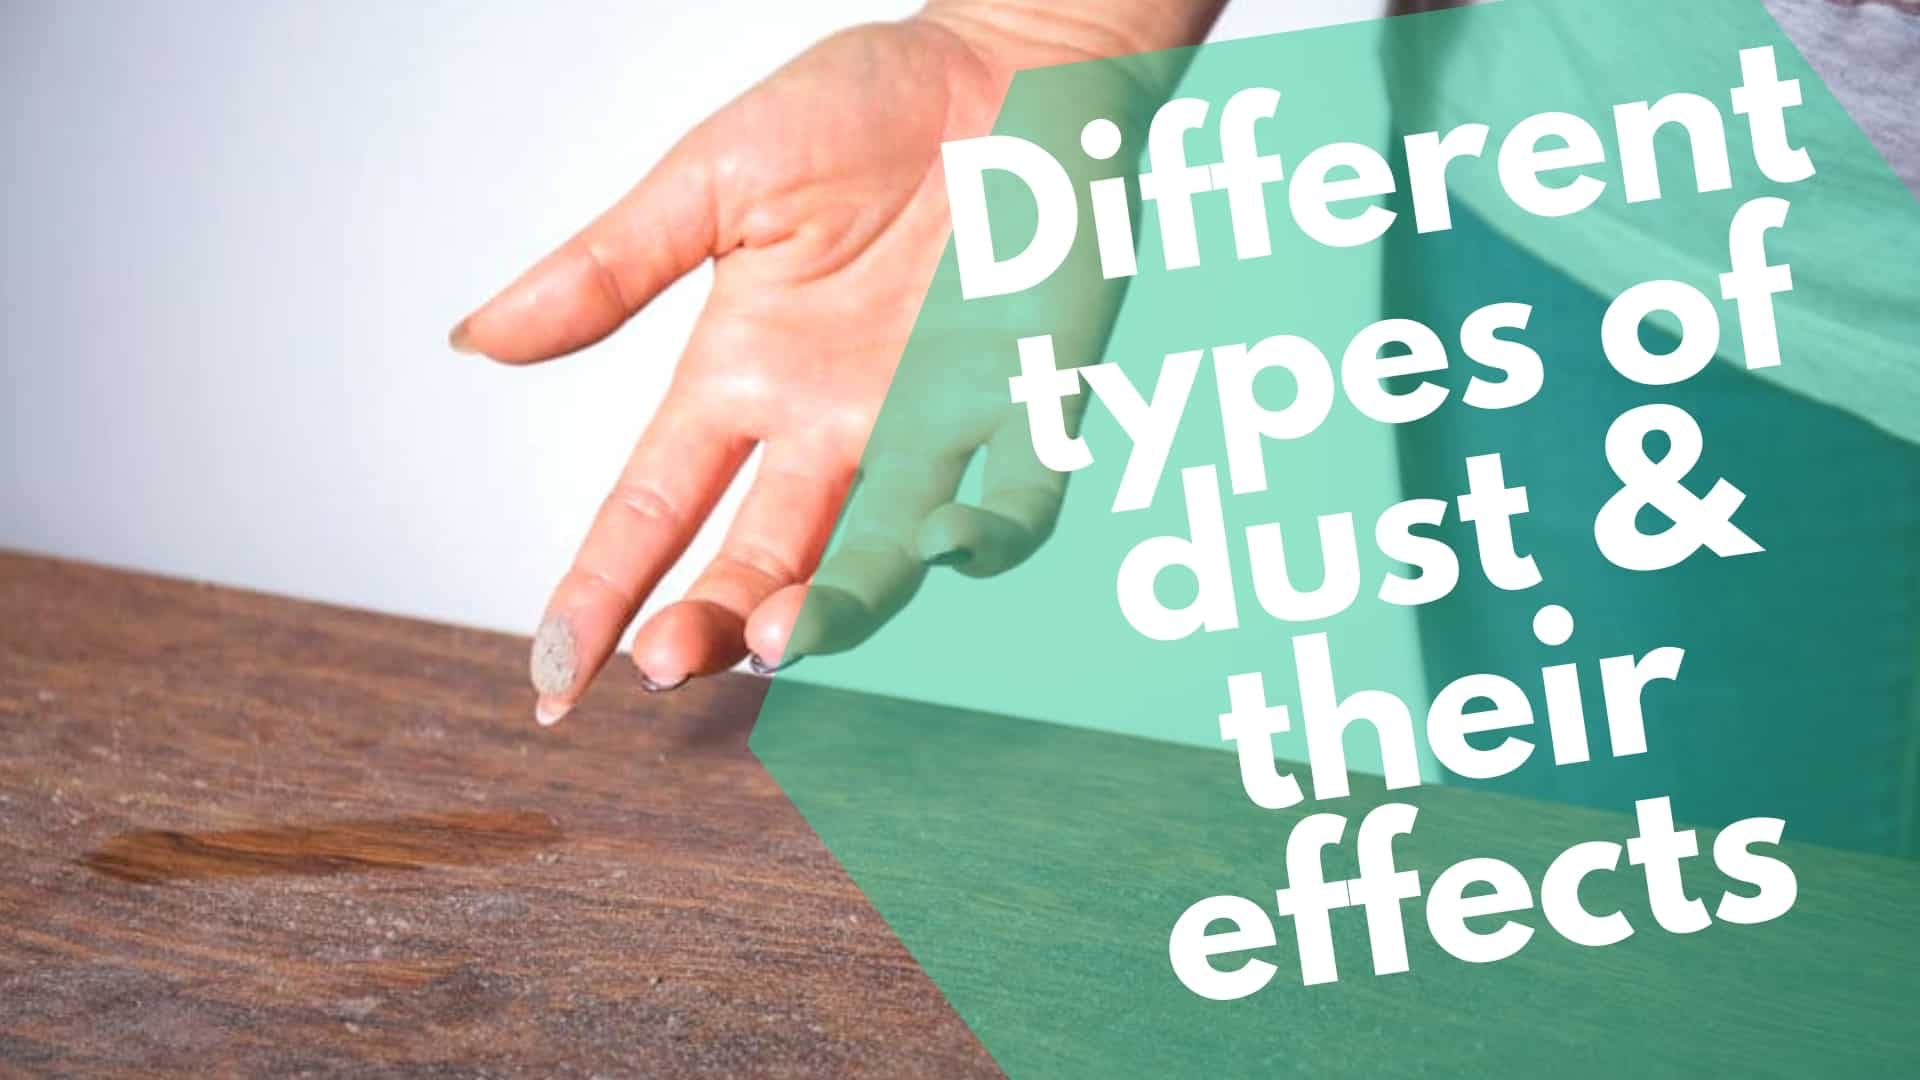 Different types of dust & their effects